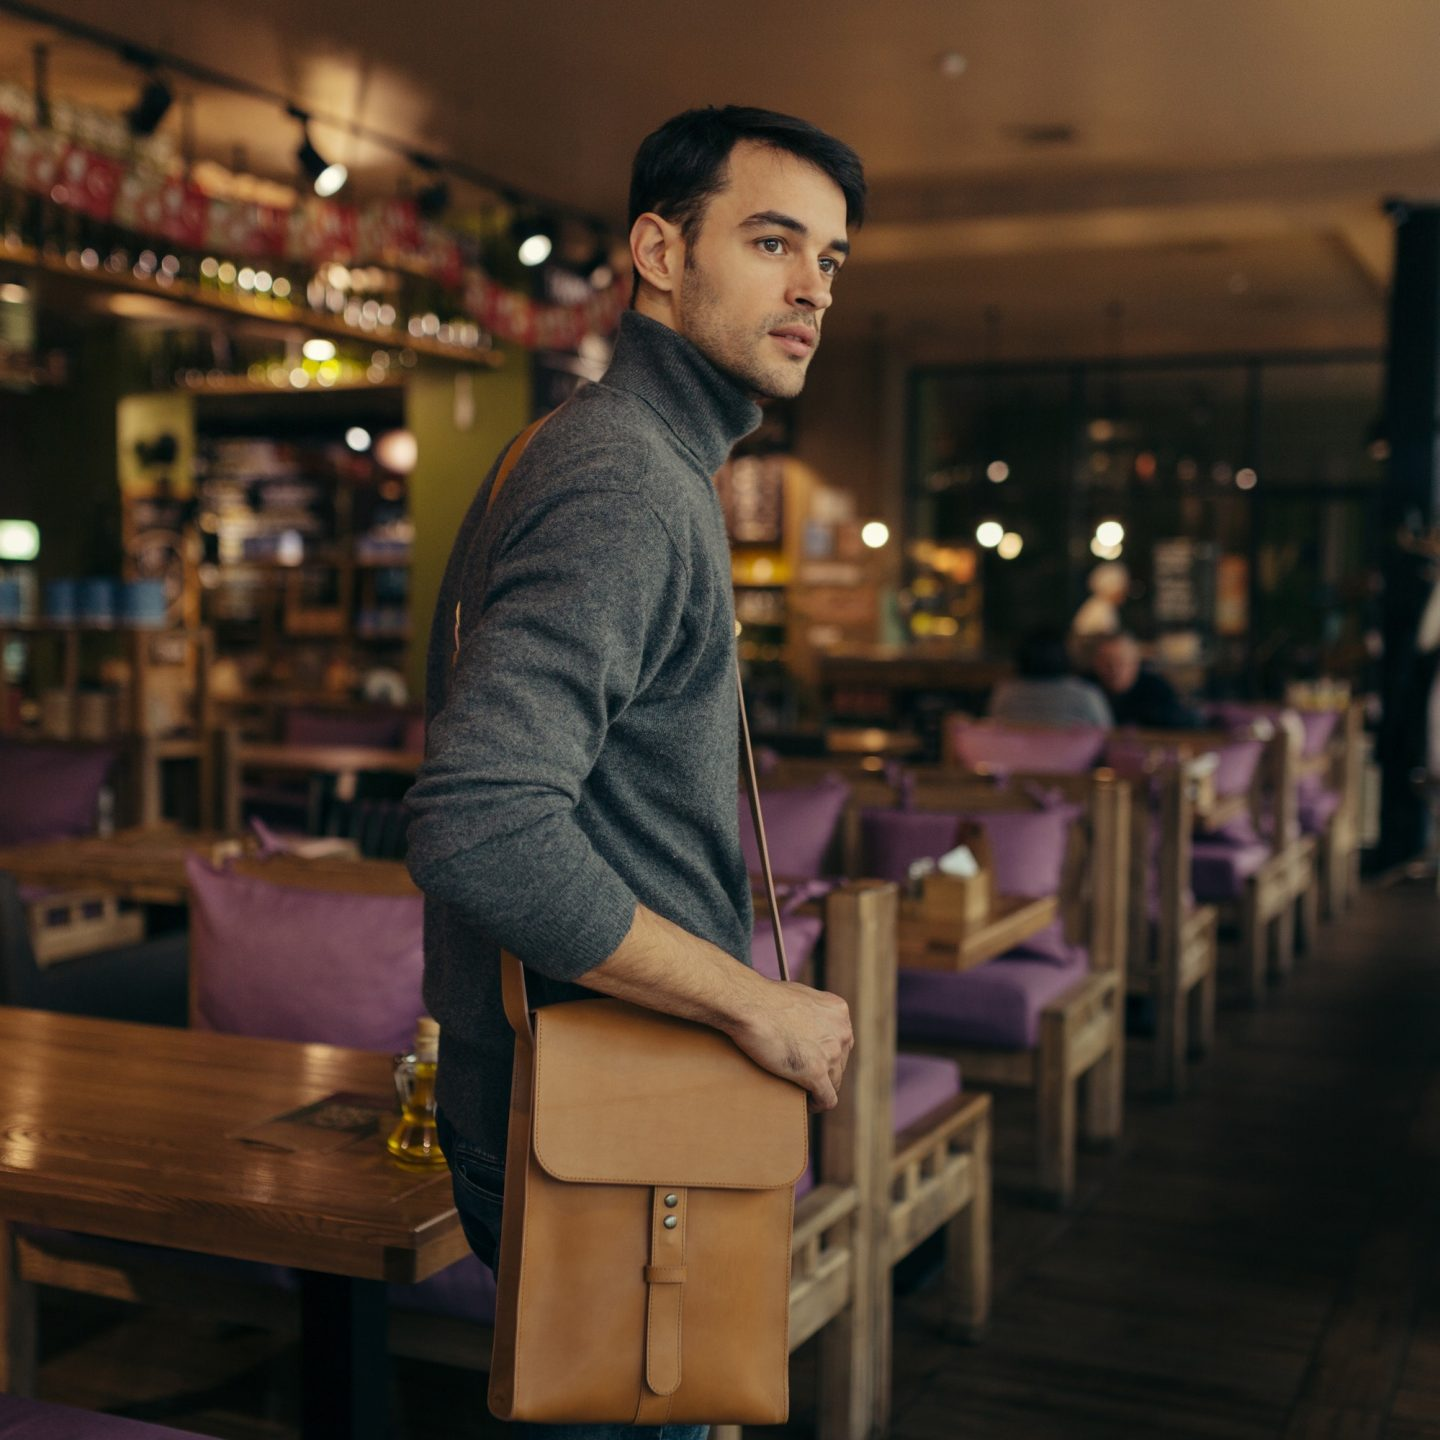 Handsome businessman with leather bag on his shoulder